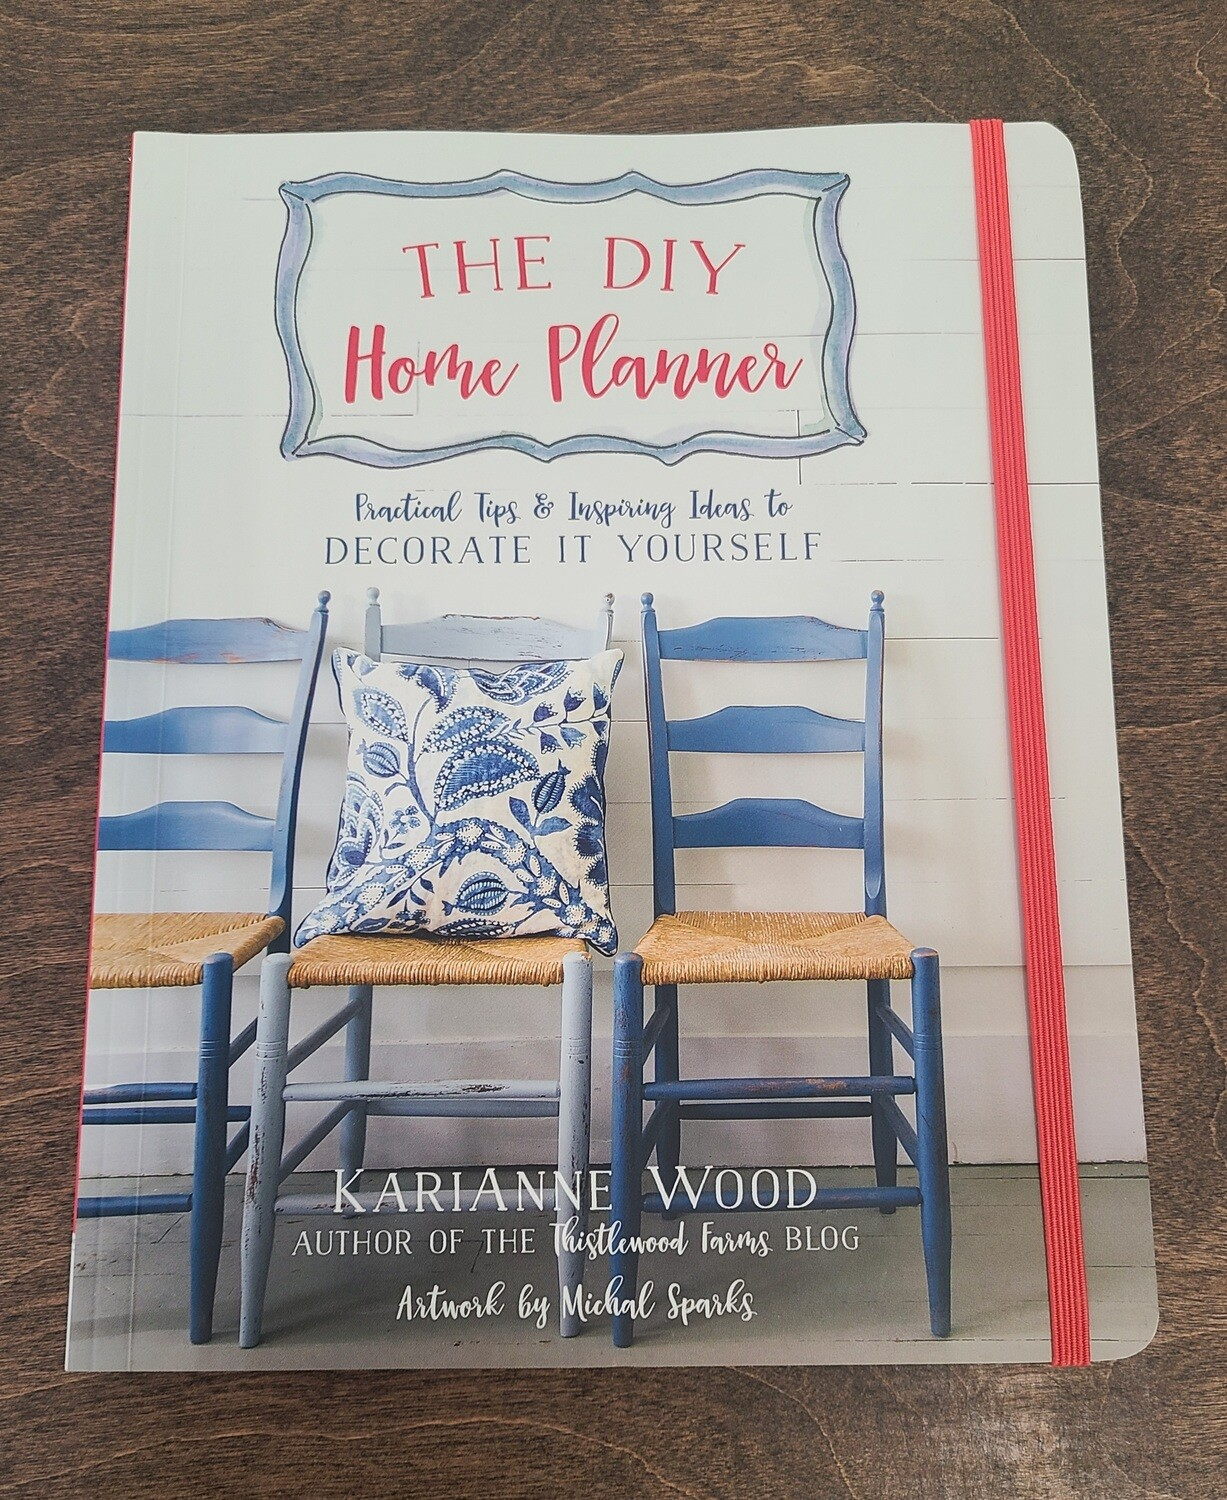 The DIY Home Planner: Practical Tips and Inspiring Ideas to Decorate It Yourself by KariAnne Wood